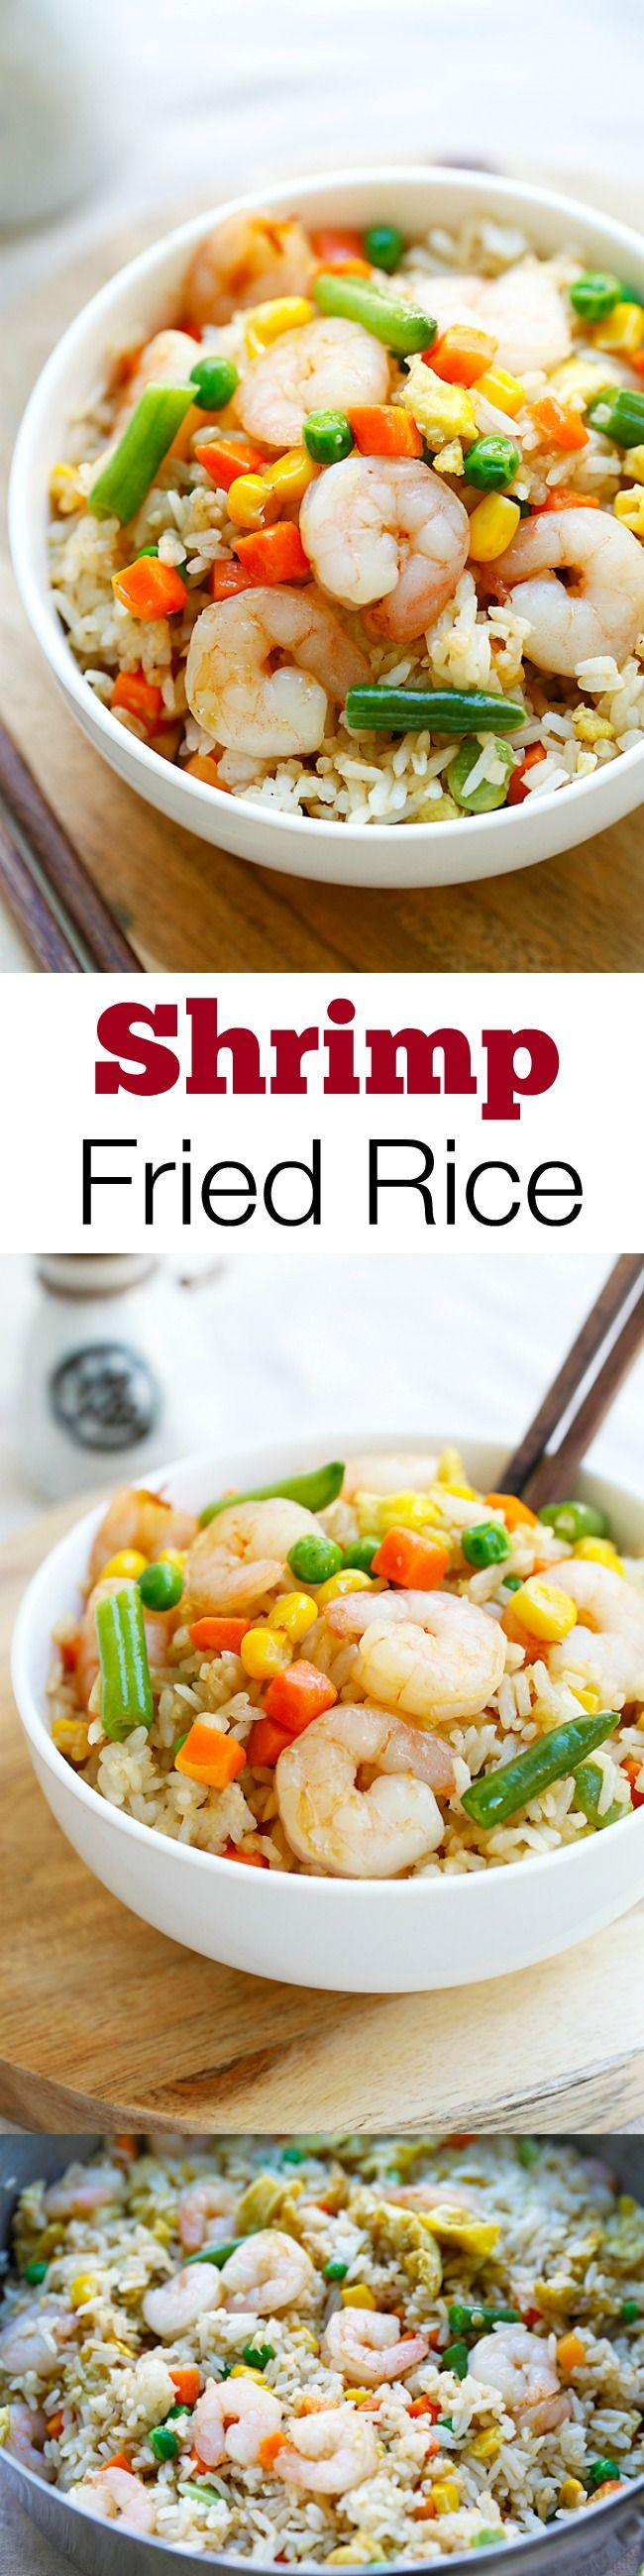 hrimp fried rice – the easiest shrimp fried rice recipe, takes only 20 mins from prep to dinner table. Healthier and a zillion times better than takeout   rasamalaysia.com